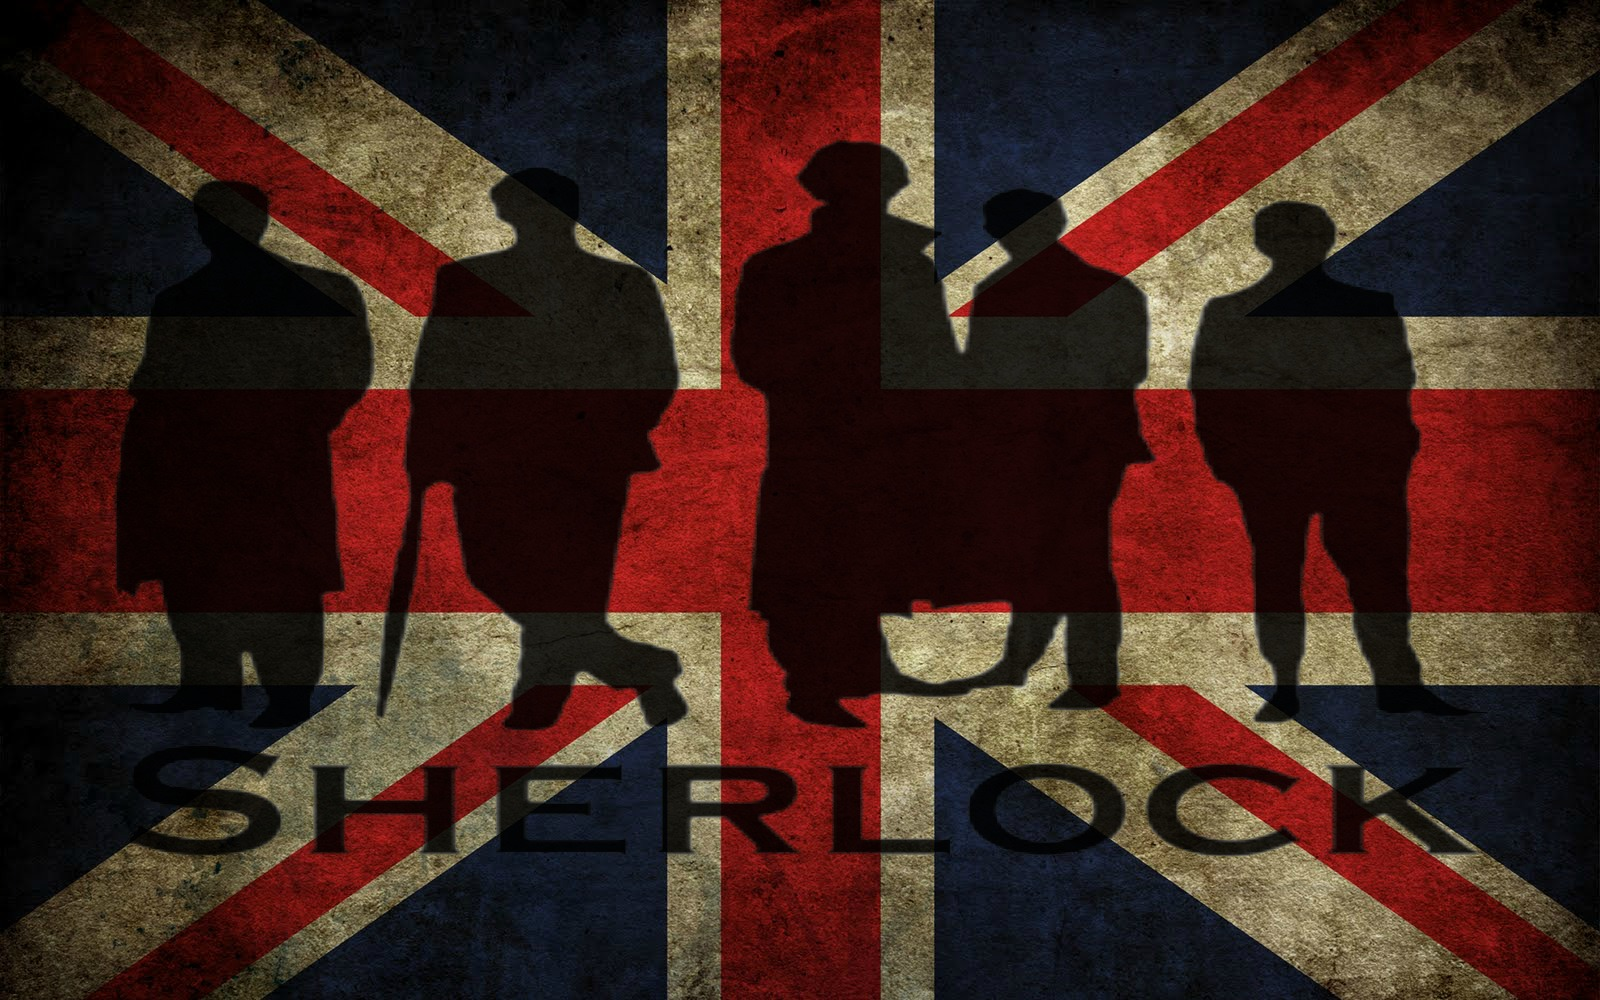 sherlock images sherlock hd wallpaper and background